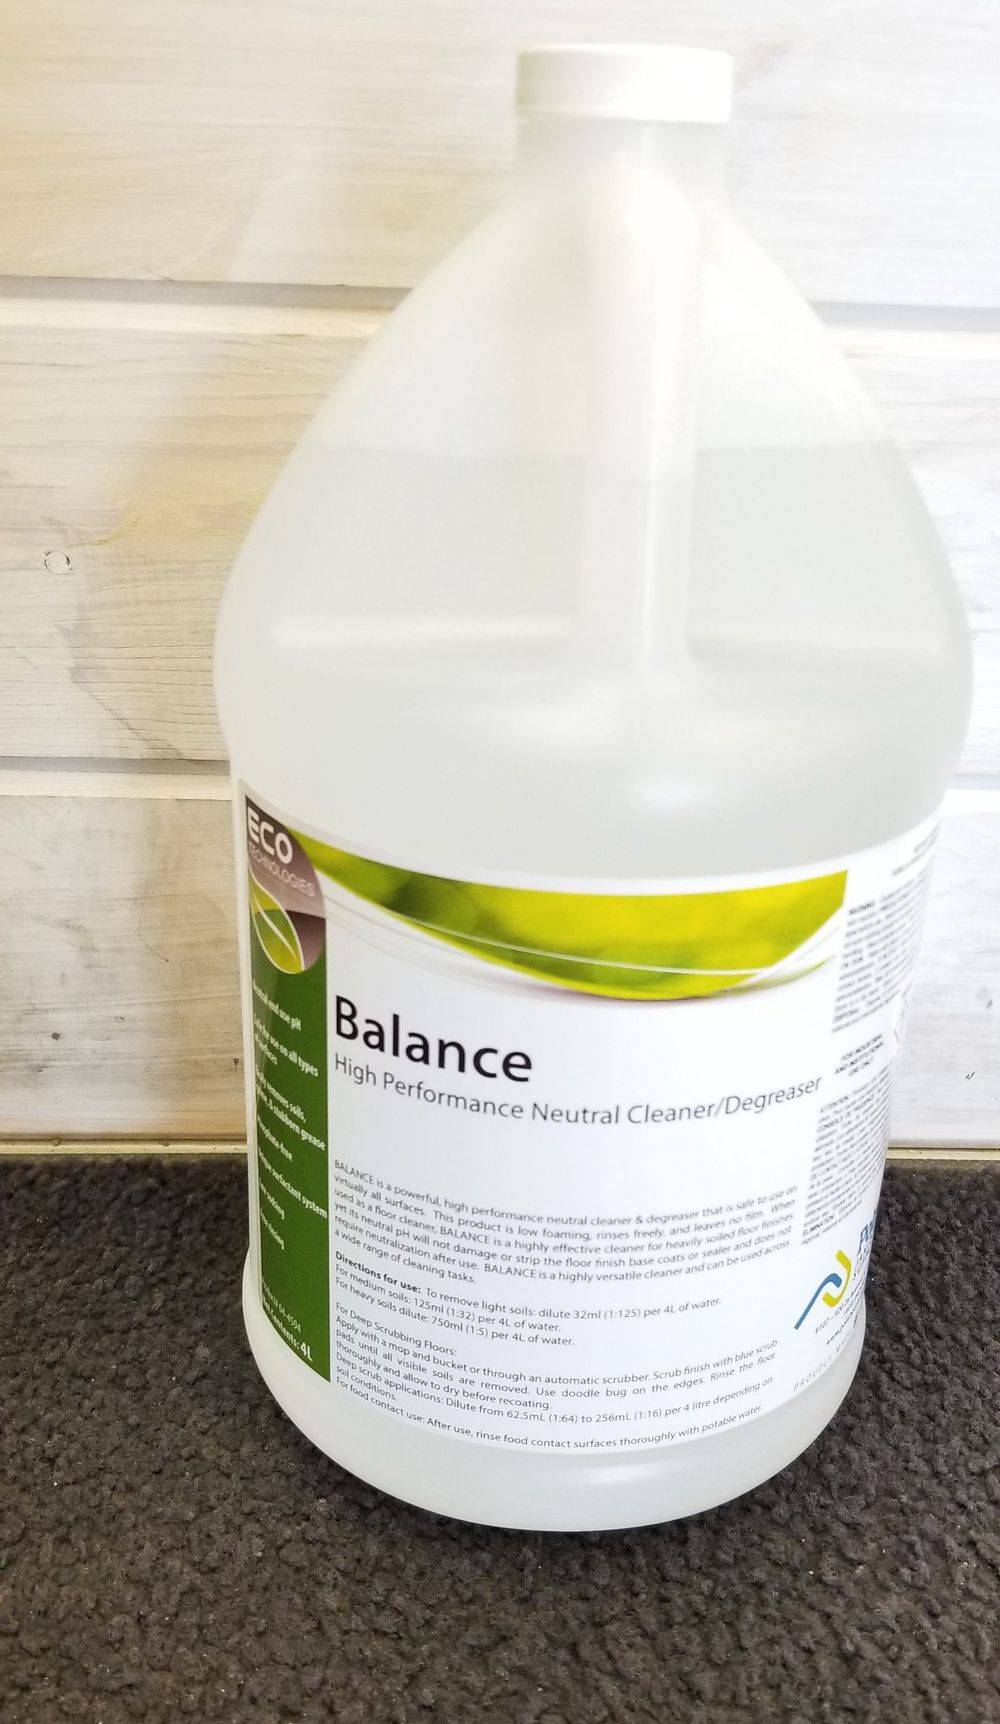 Balance High Performance Neutral Deep Scrub Concentrated Cleaner